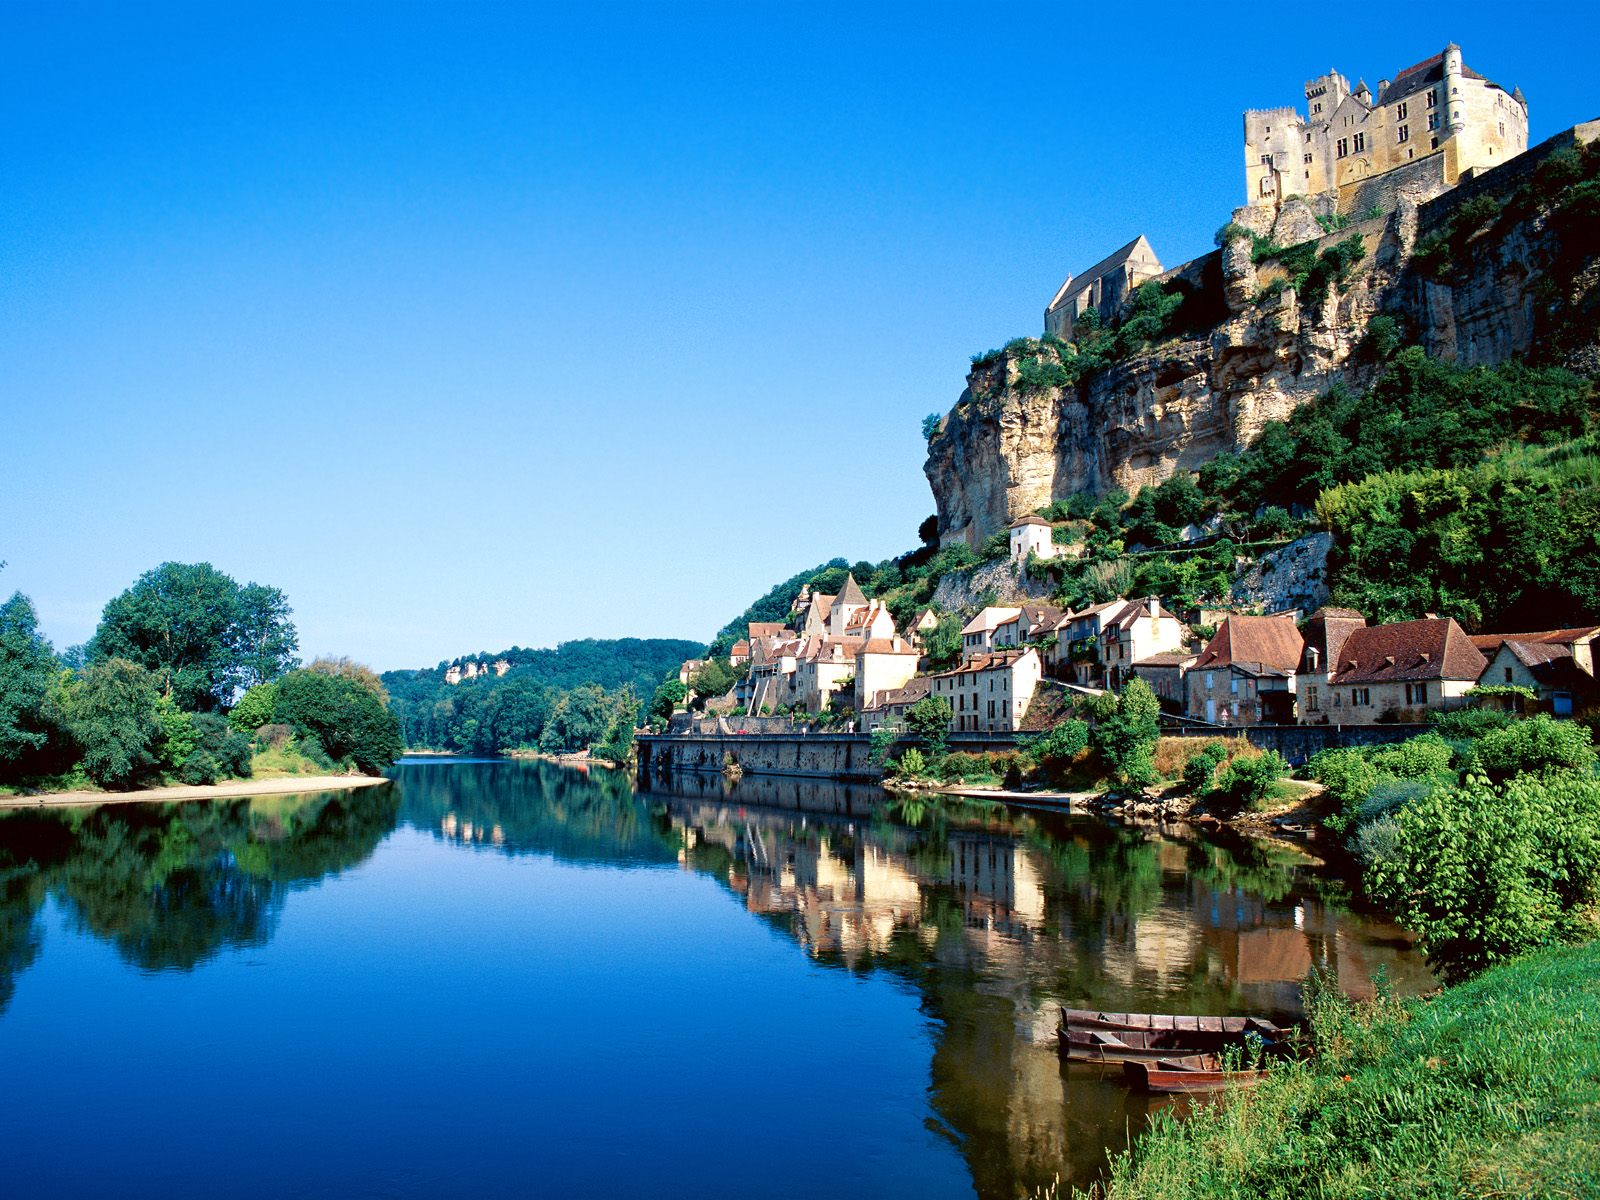 South West France property hot spots revealed by Home Hunts